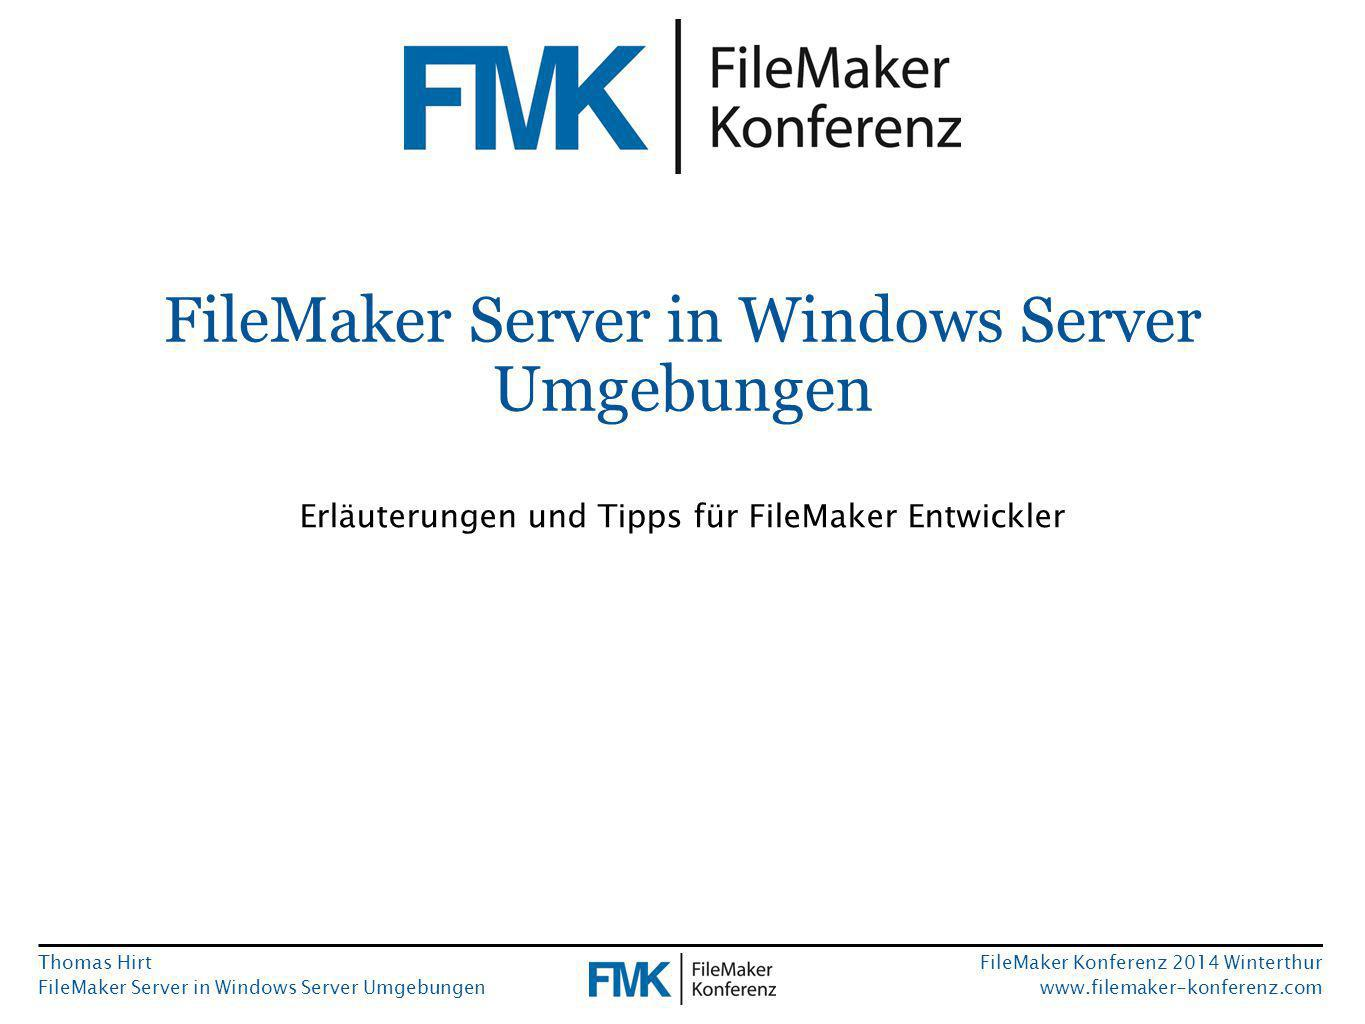 Thomas Hirt FileMaker Server in Windows Server Umgebungen FileMaker Konferenz 2014 Winterthur www.filemaker-konferenz.com FileMaker Server in Windows Server Umgebungen Erläuterungen und Tipps für FileMaker Entwickler